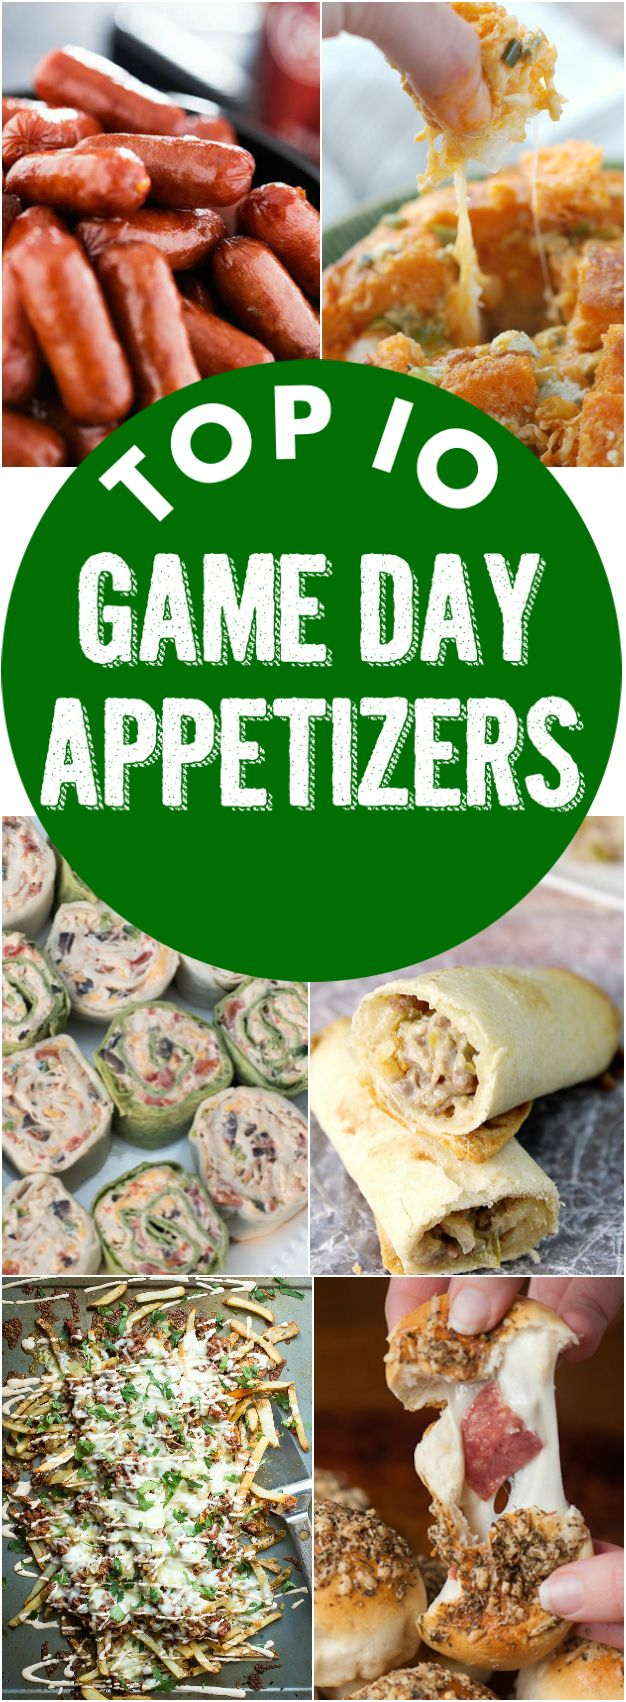 I have your Top 10 Game Day Appetizers! Make all 10. You can thank me later.